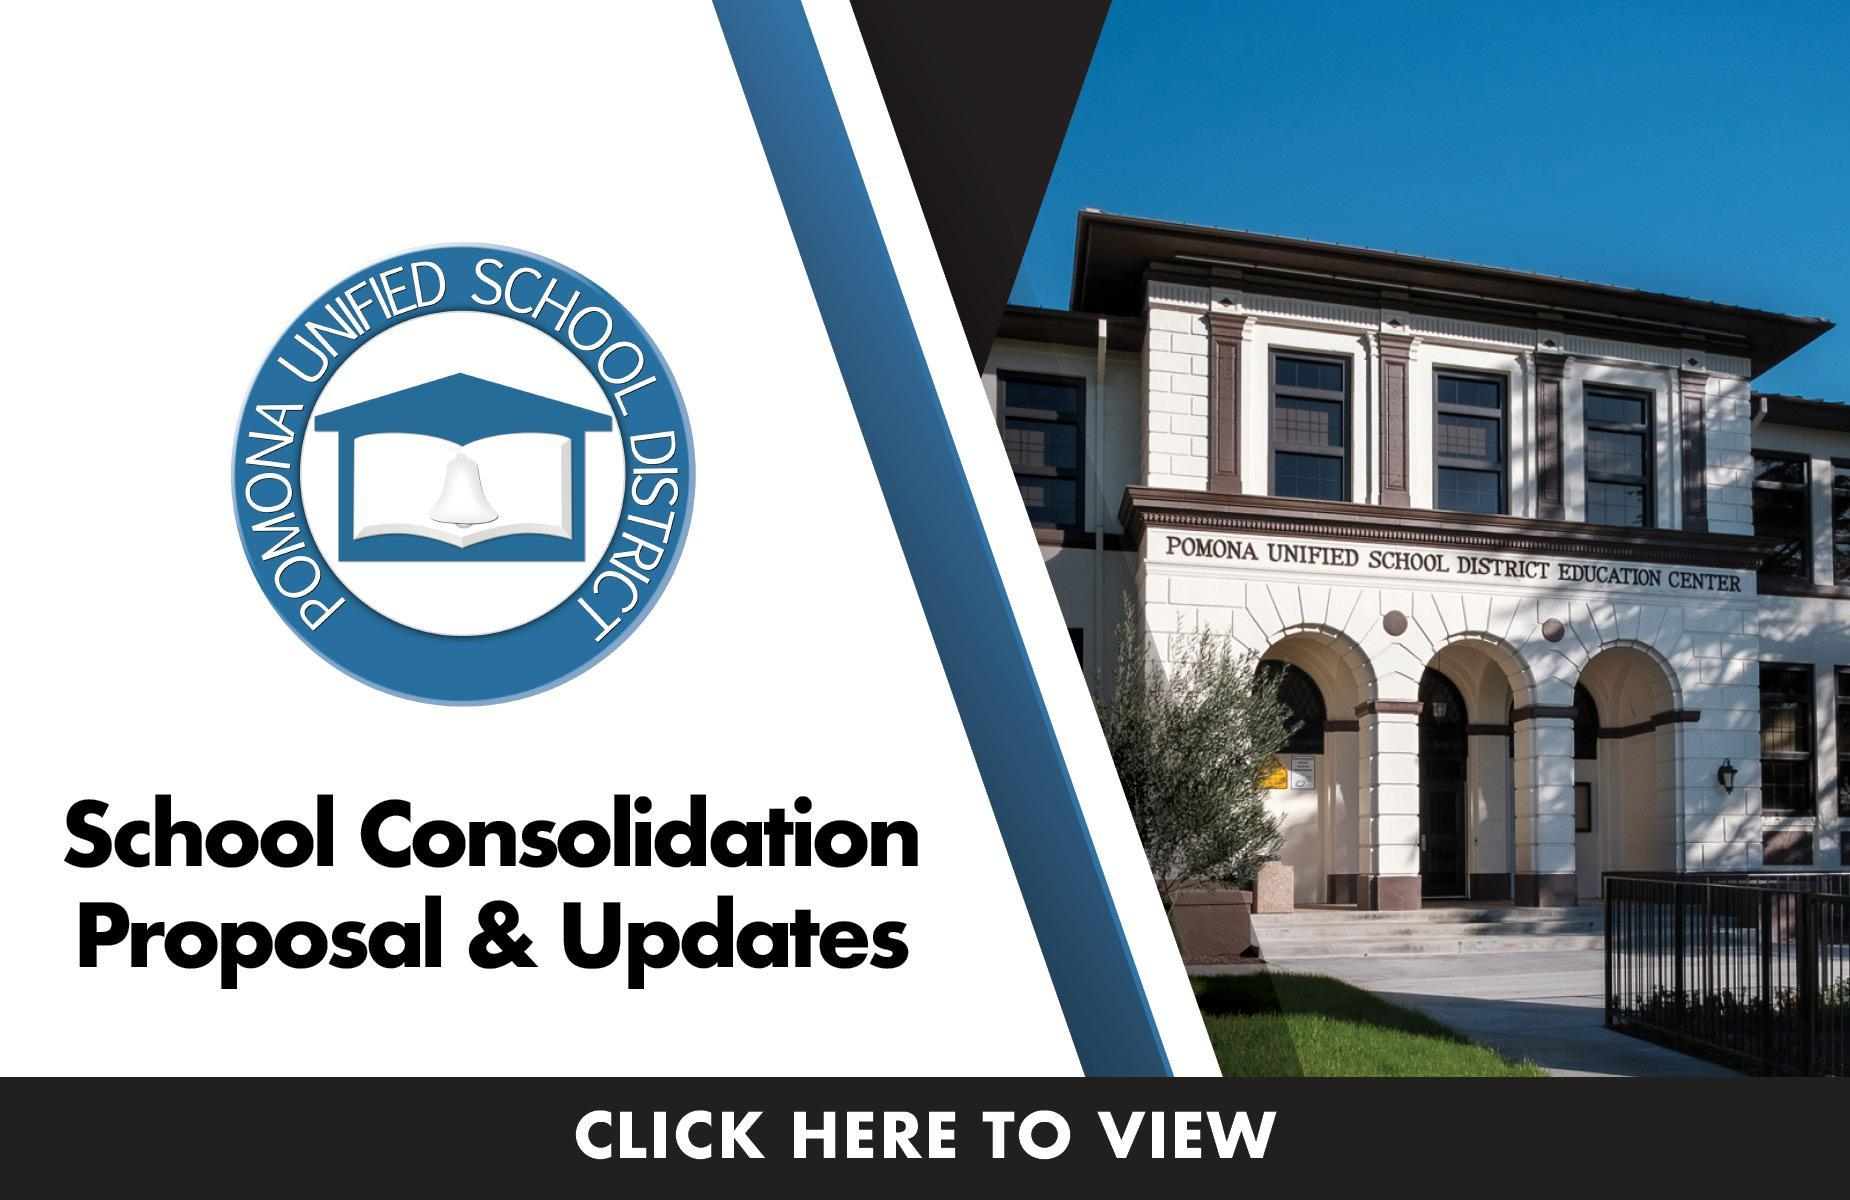 School Consolidation Proposal & Updates